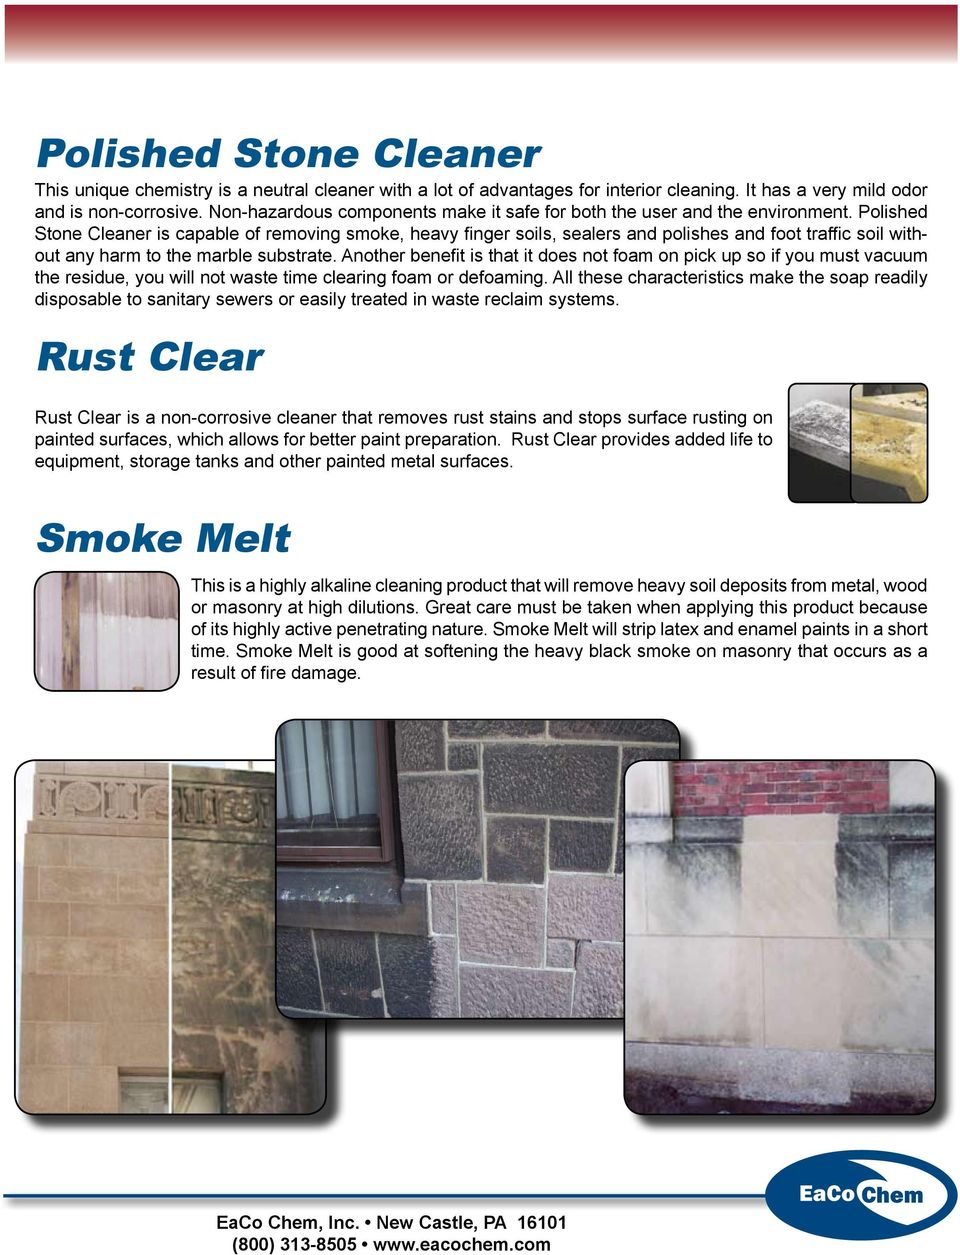 Polished Stone Cleaner is capable of removing smoke, heavy finger soils, sealers and polishes and foot traffic soil without any harm to the marble substrate.